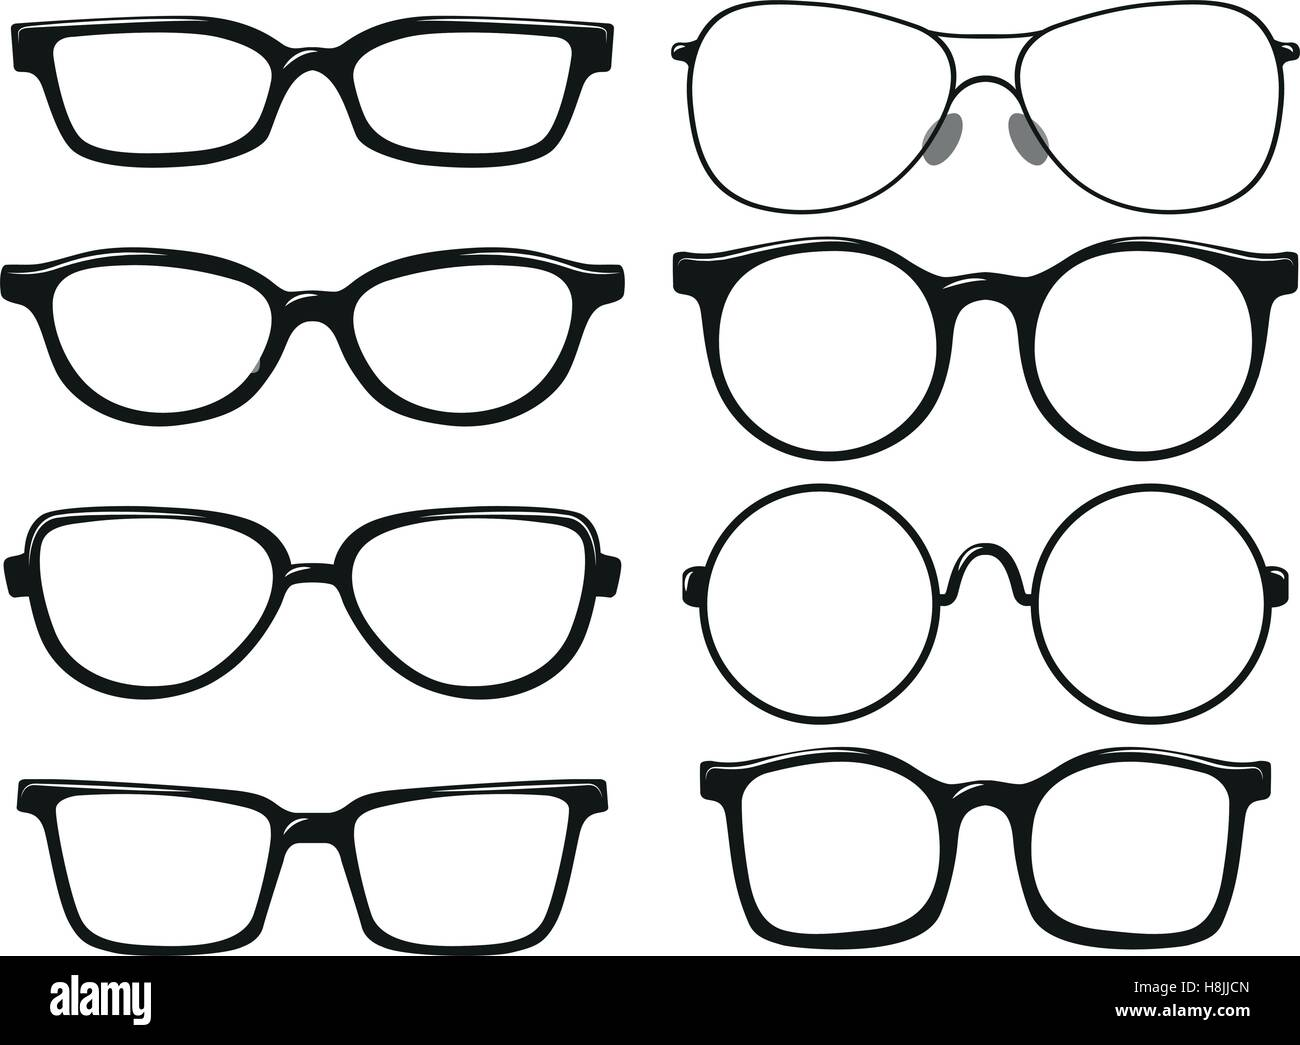 Different design of eyeglasses frames illustration Stock Vector Art ...